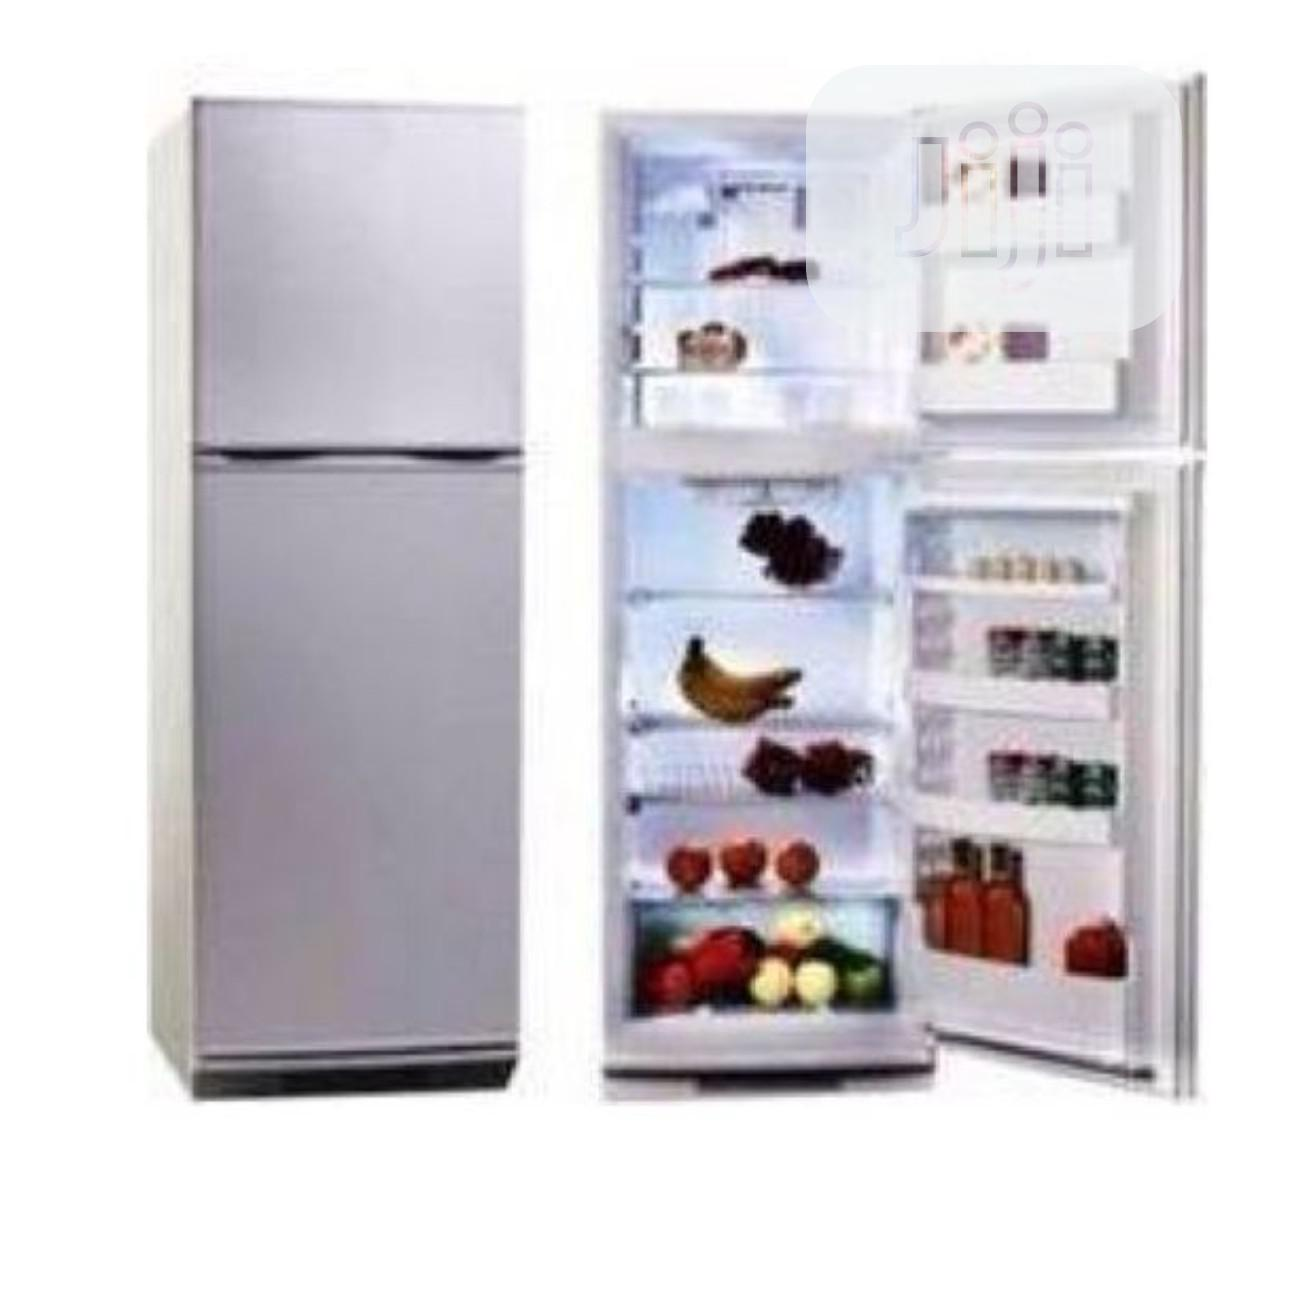 Brand New Midea HD-273F 207L Top Mount, Double Door Refrigerator | Kitchen Appliances for sale in Ojo, Lagos State, Nigeria